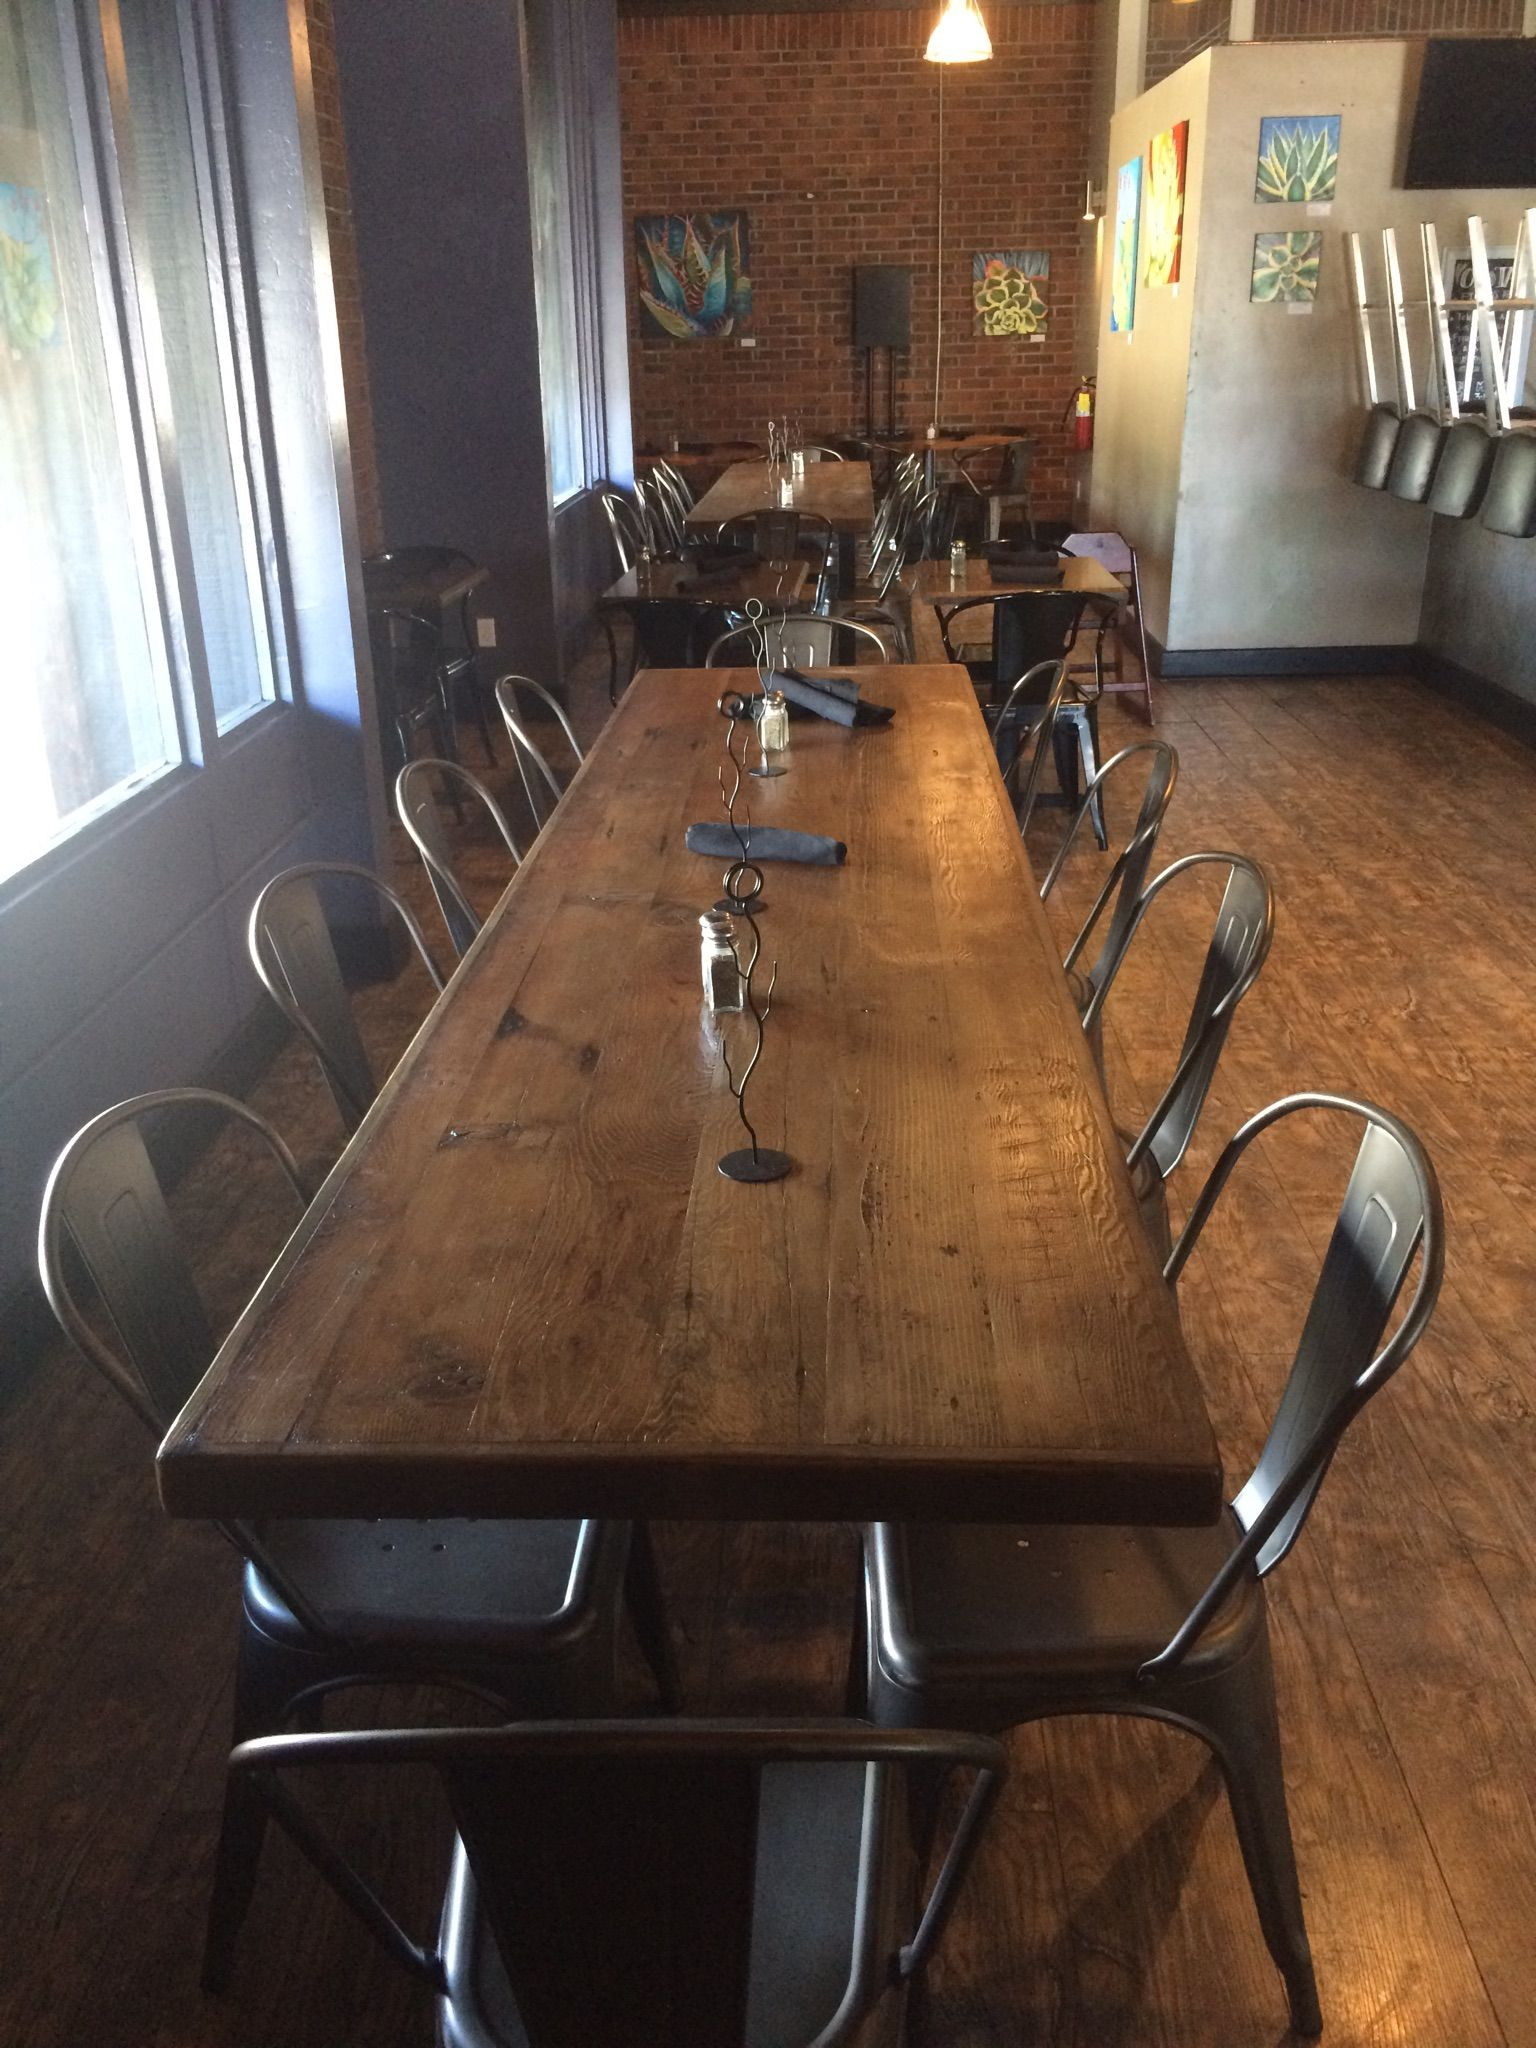 Reclaimed Wood Table Top With Straight Planks Available In Many Sizes From Restaurant And Cafe Supplies Online Quality Furniture At Fair Prices